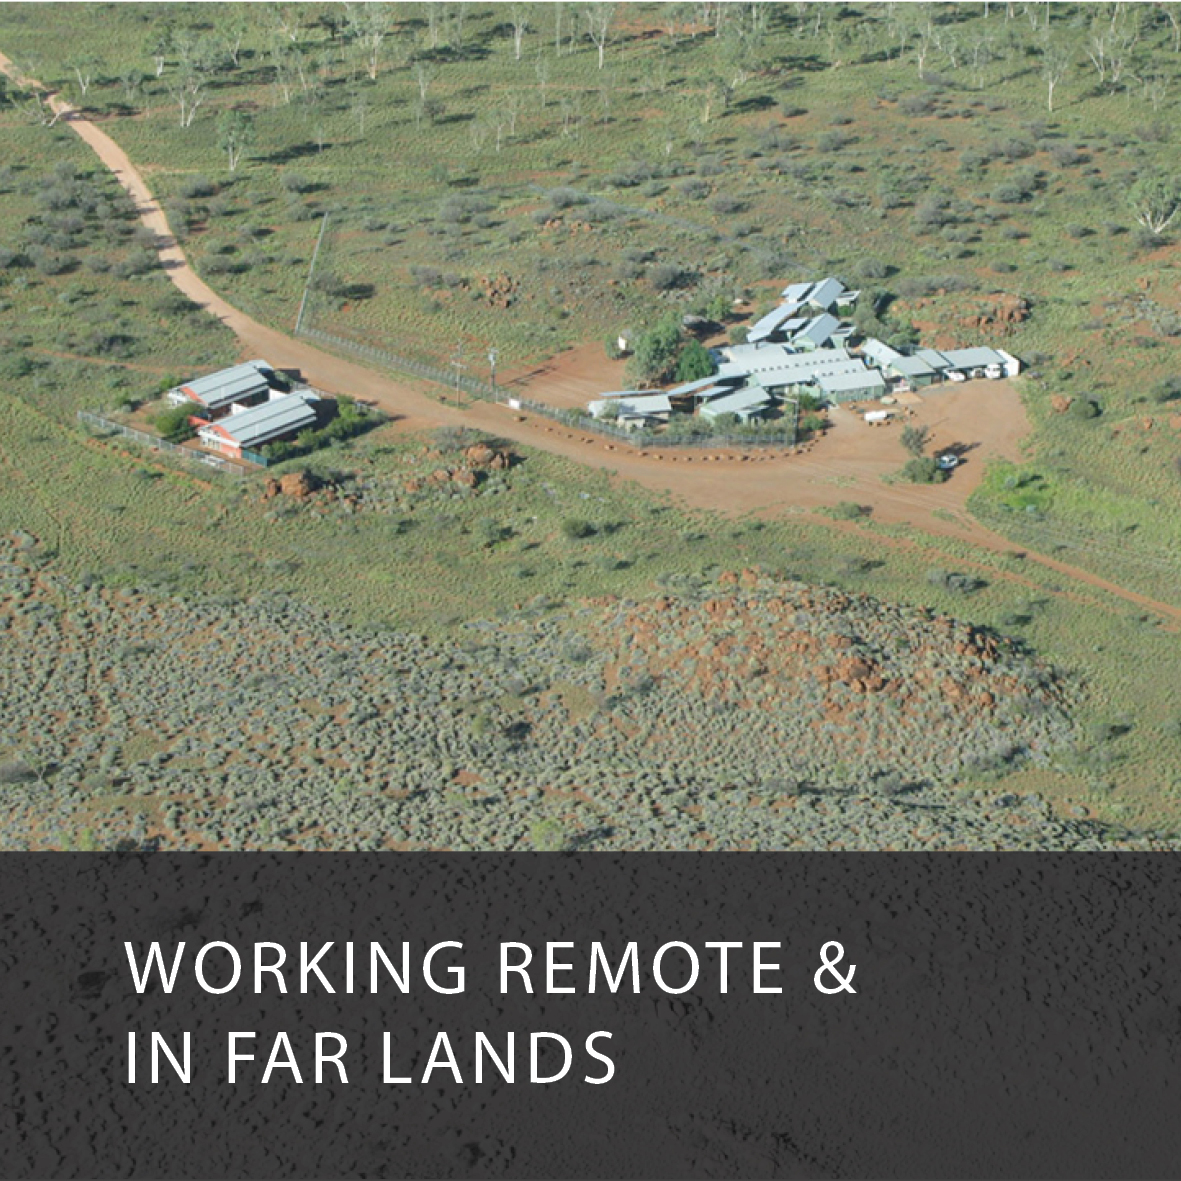 WORKING REMOTE & IN FAR LANDS